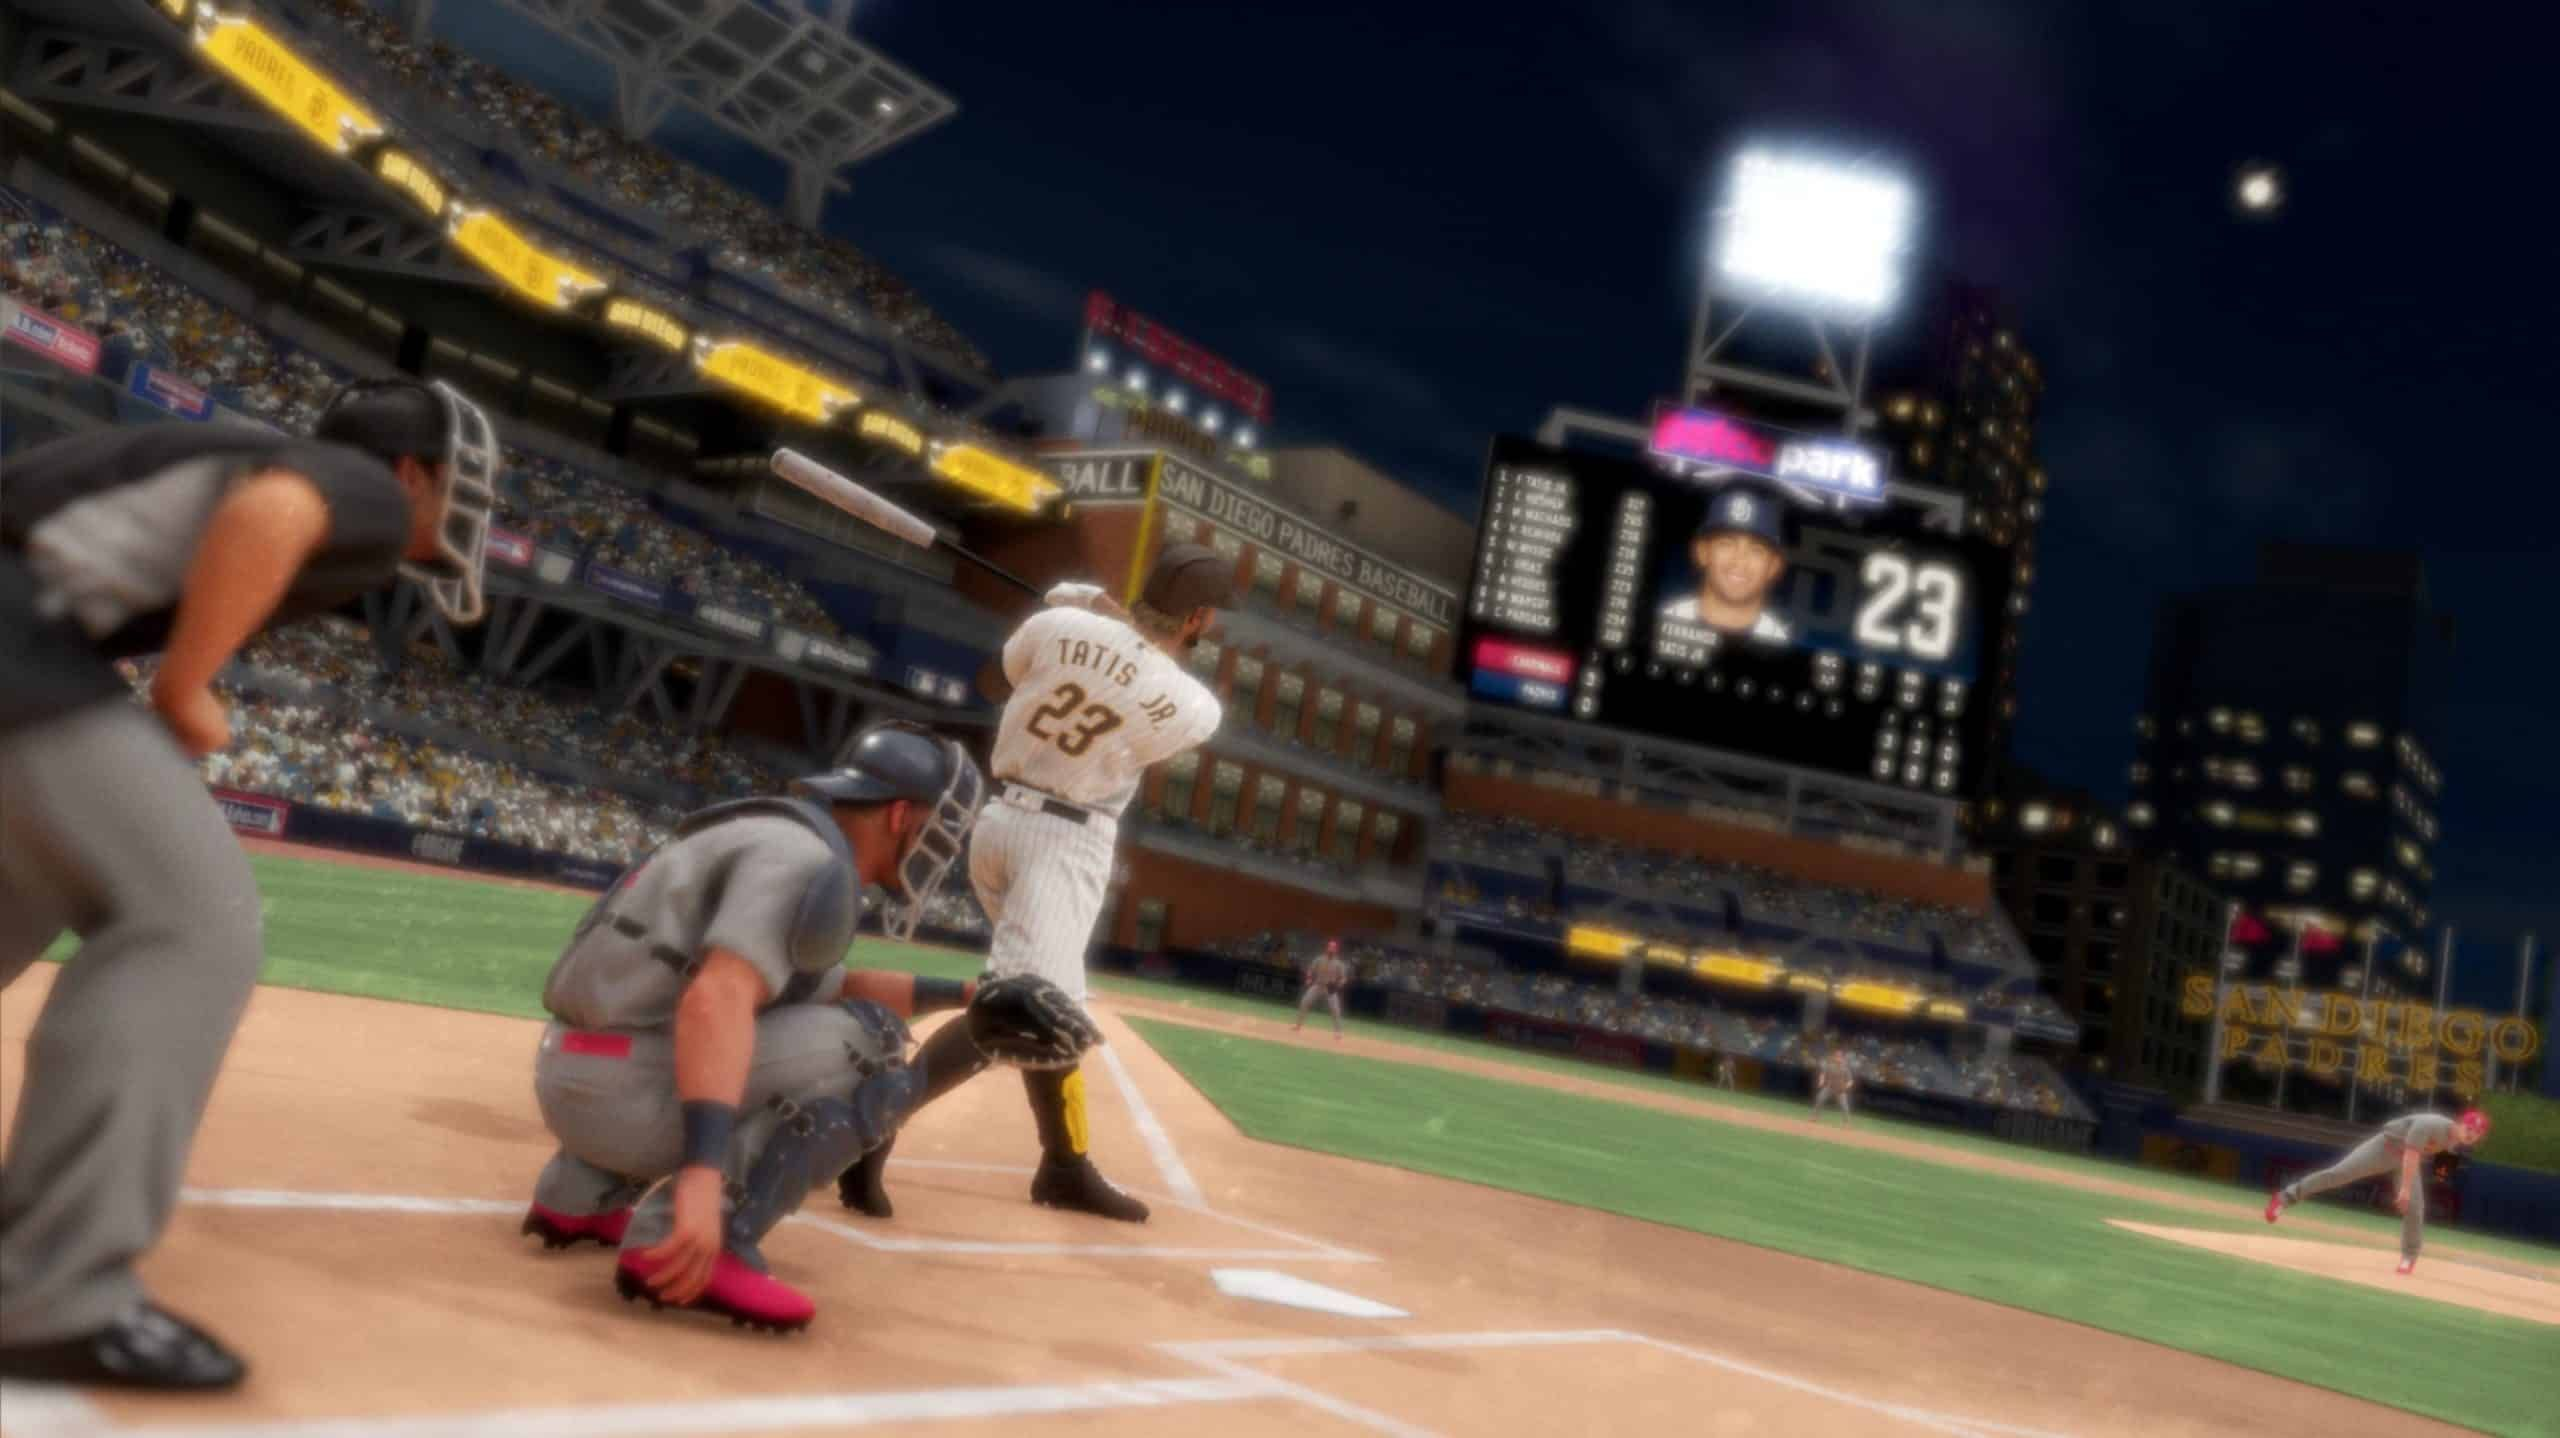 First Gameplay Footage of R.B.I. Baseball 20 Released